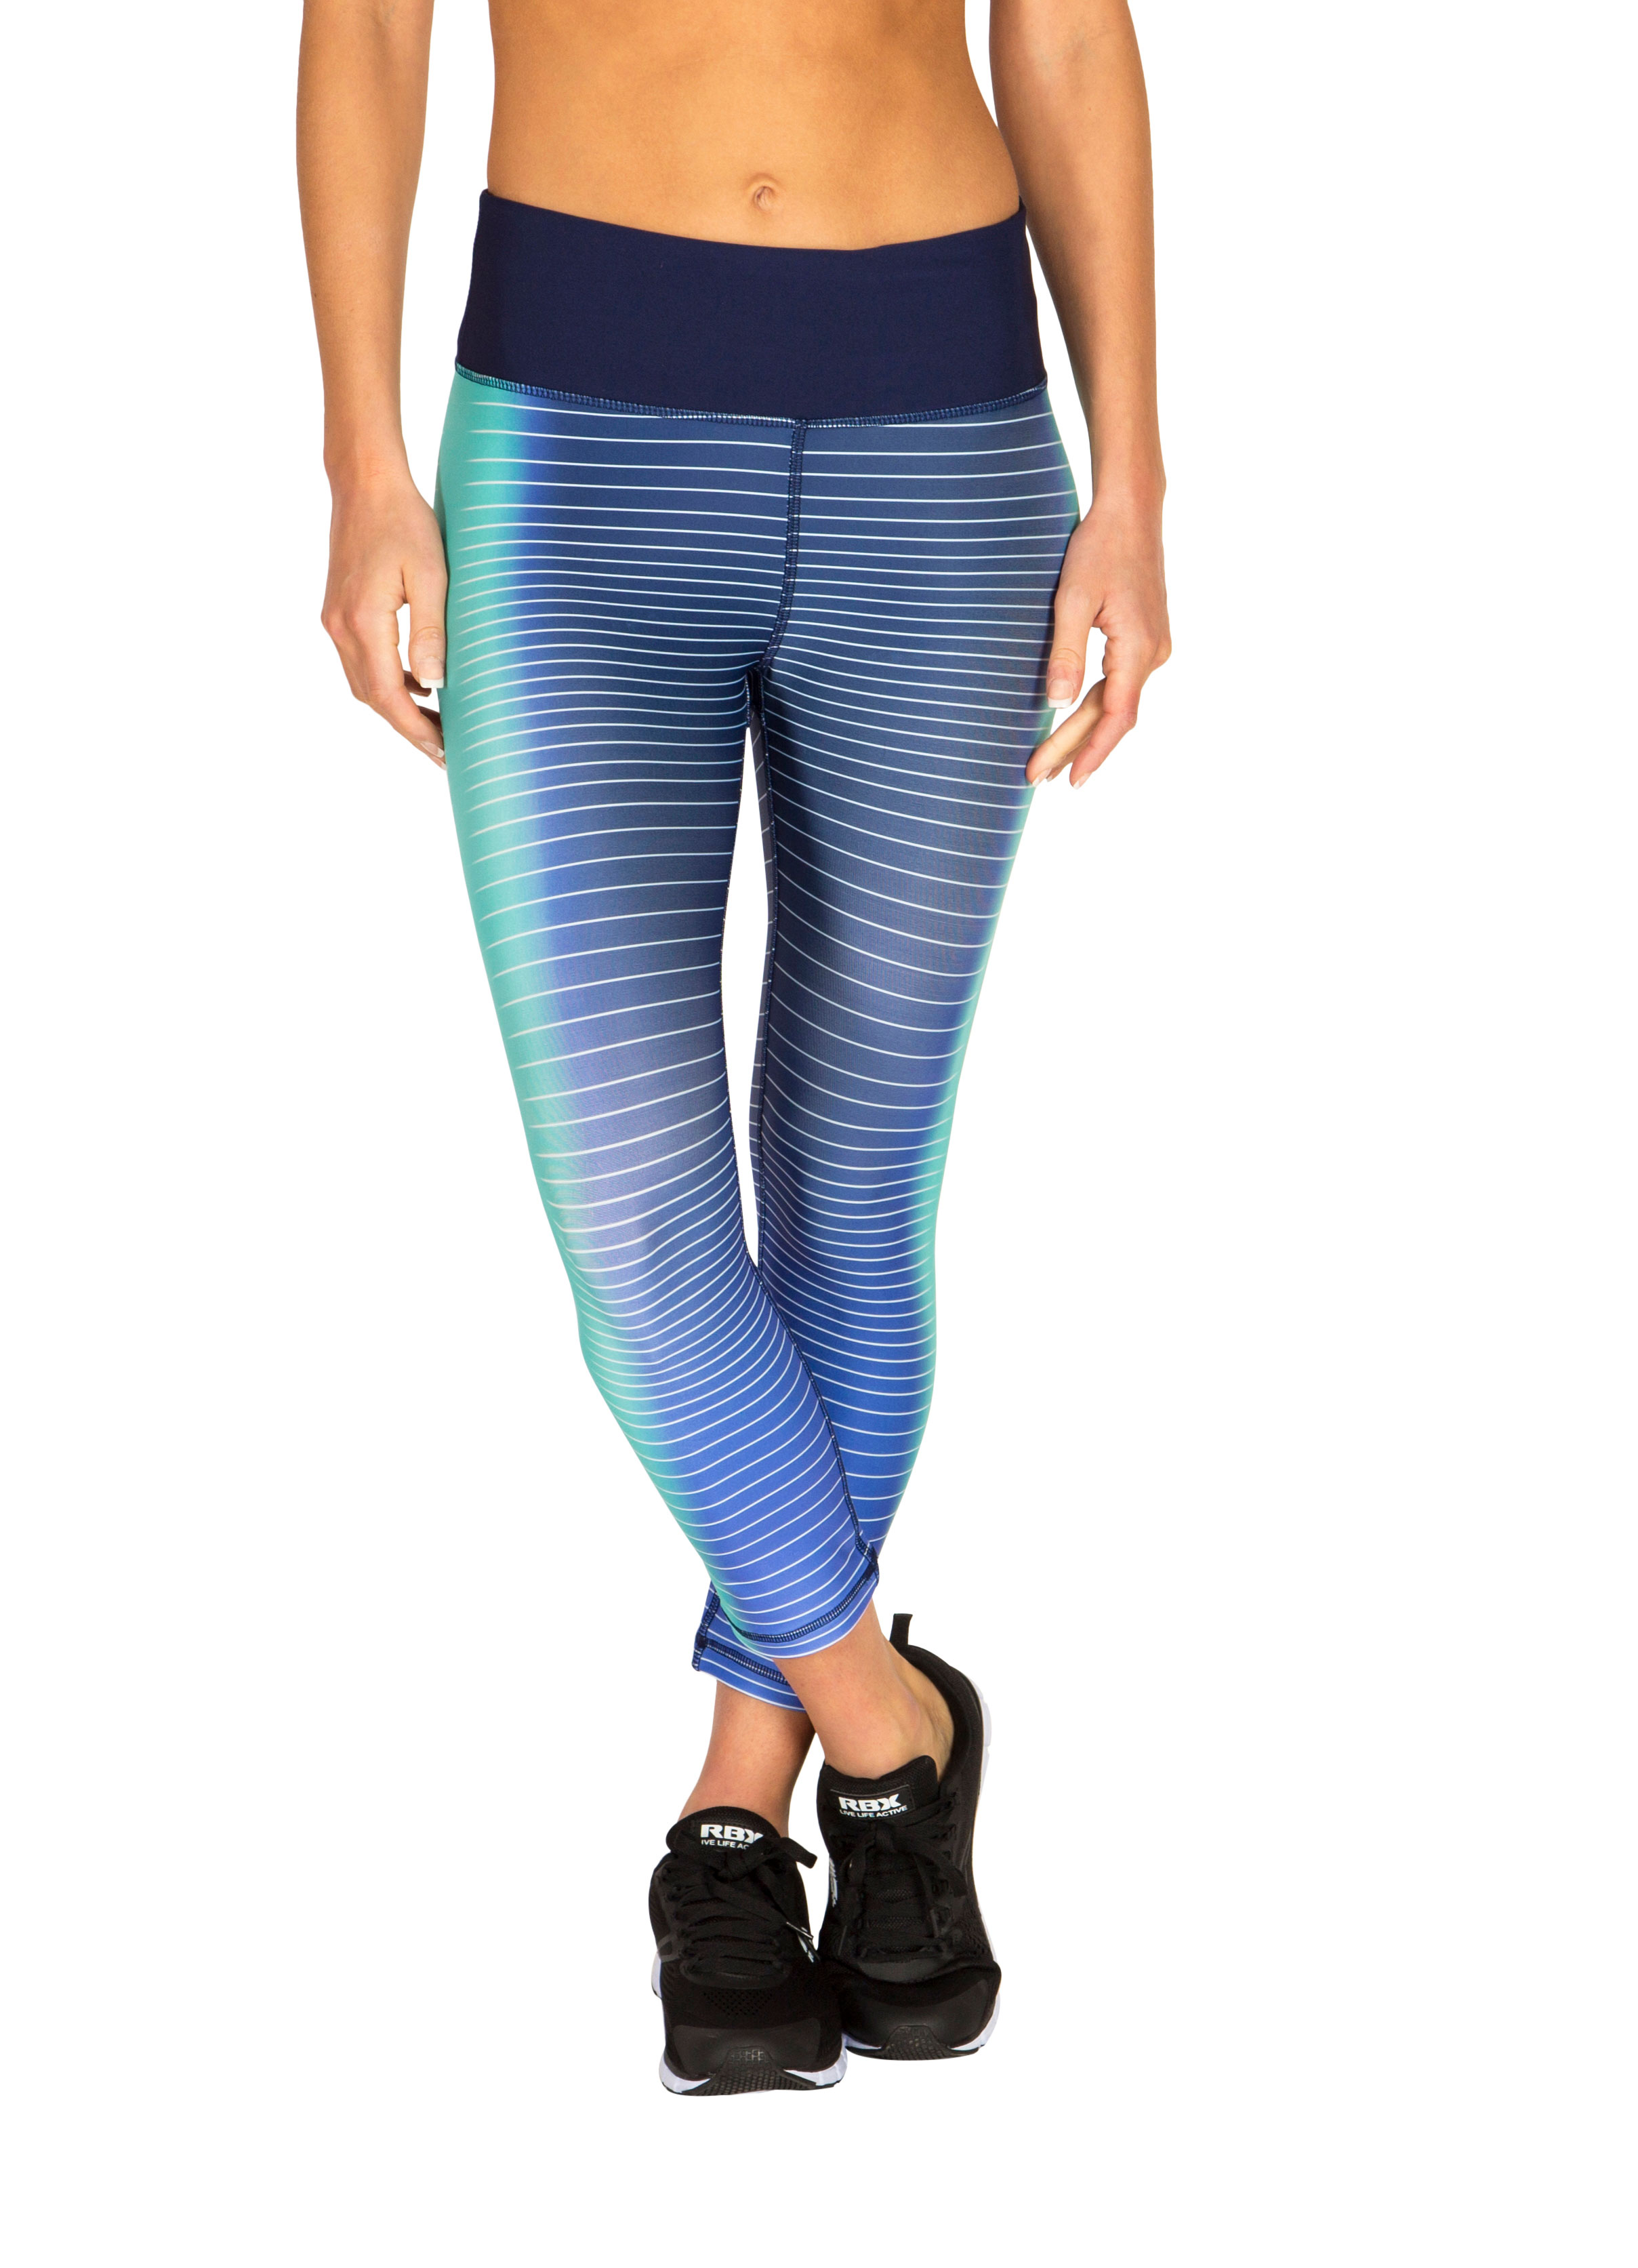 0552ab0657f98e Sears has a stylish selection of womenâ s activewear for year-round training.  Find